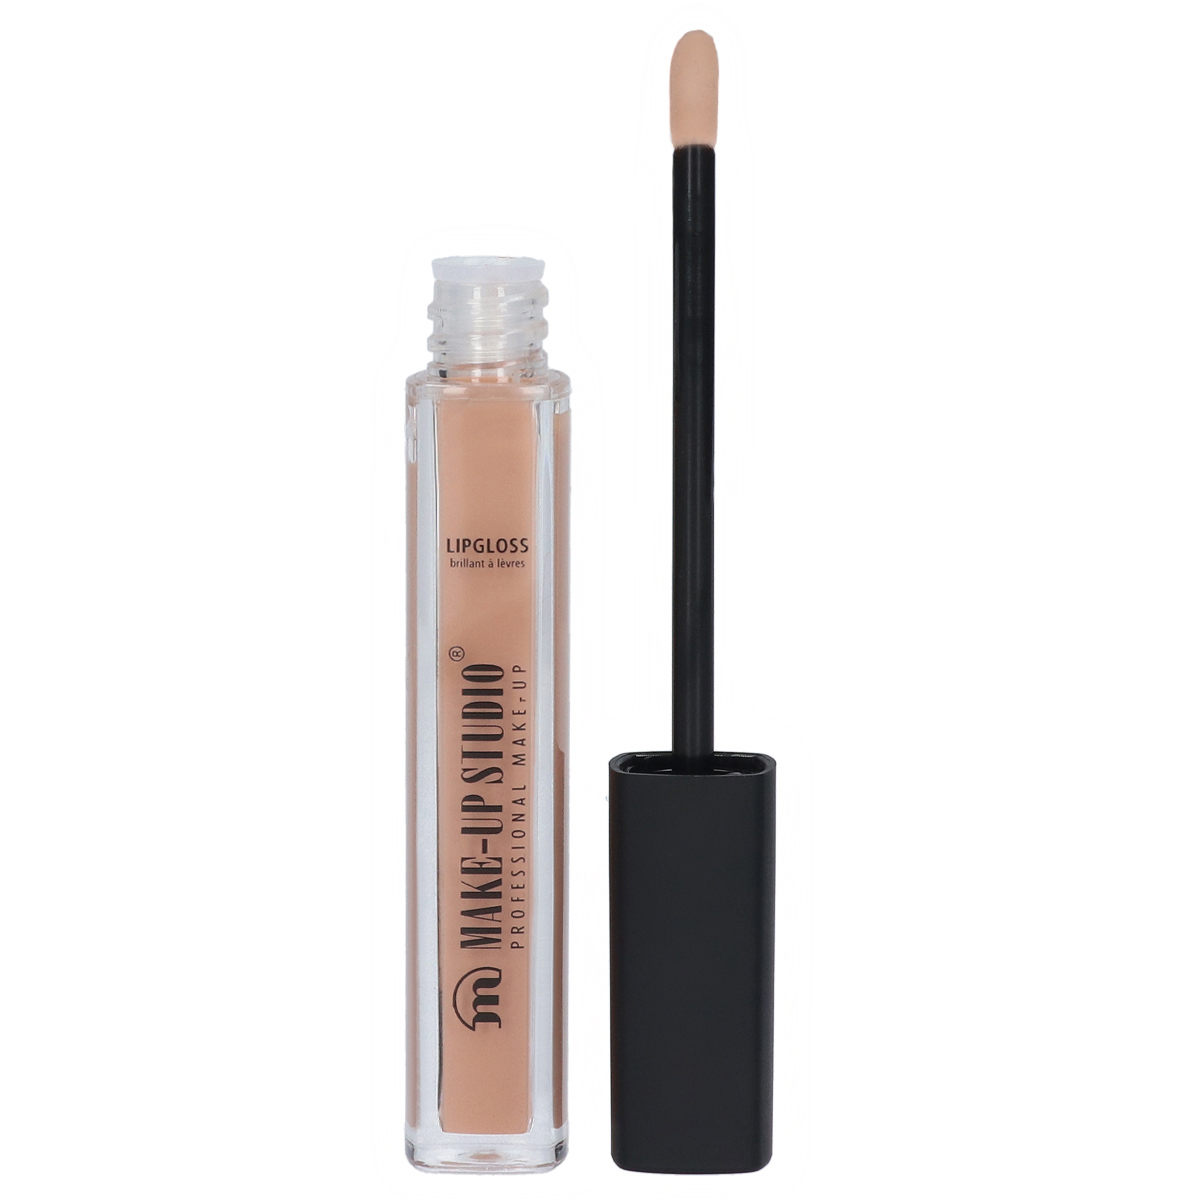 Paint Gloss Lipgloss - Barely Nude